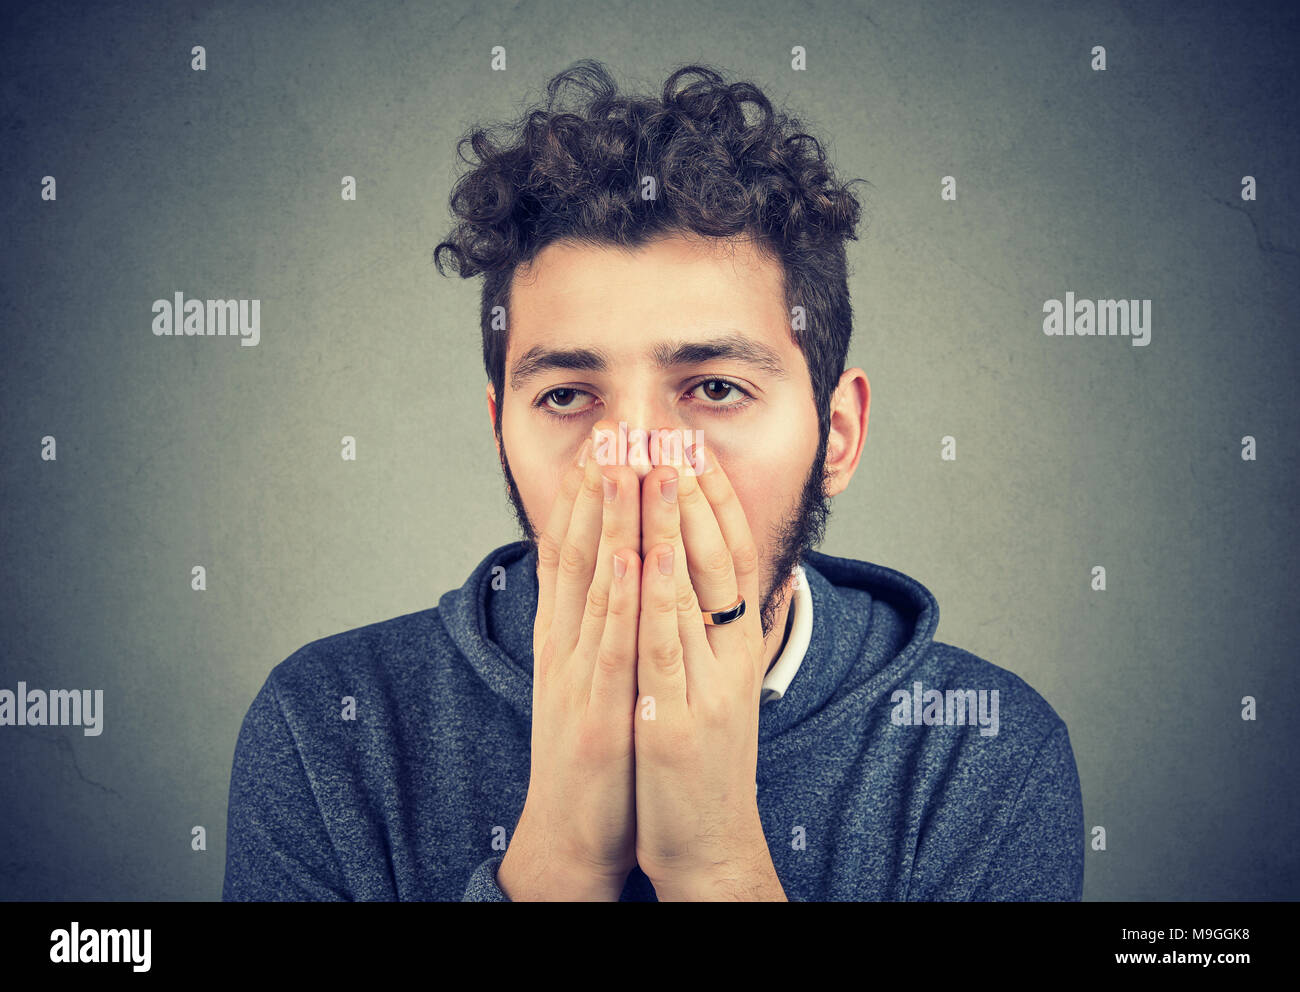 Hipster guy having big problem and covering face dramatically looking away. - Stock Image